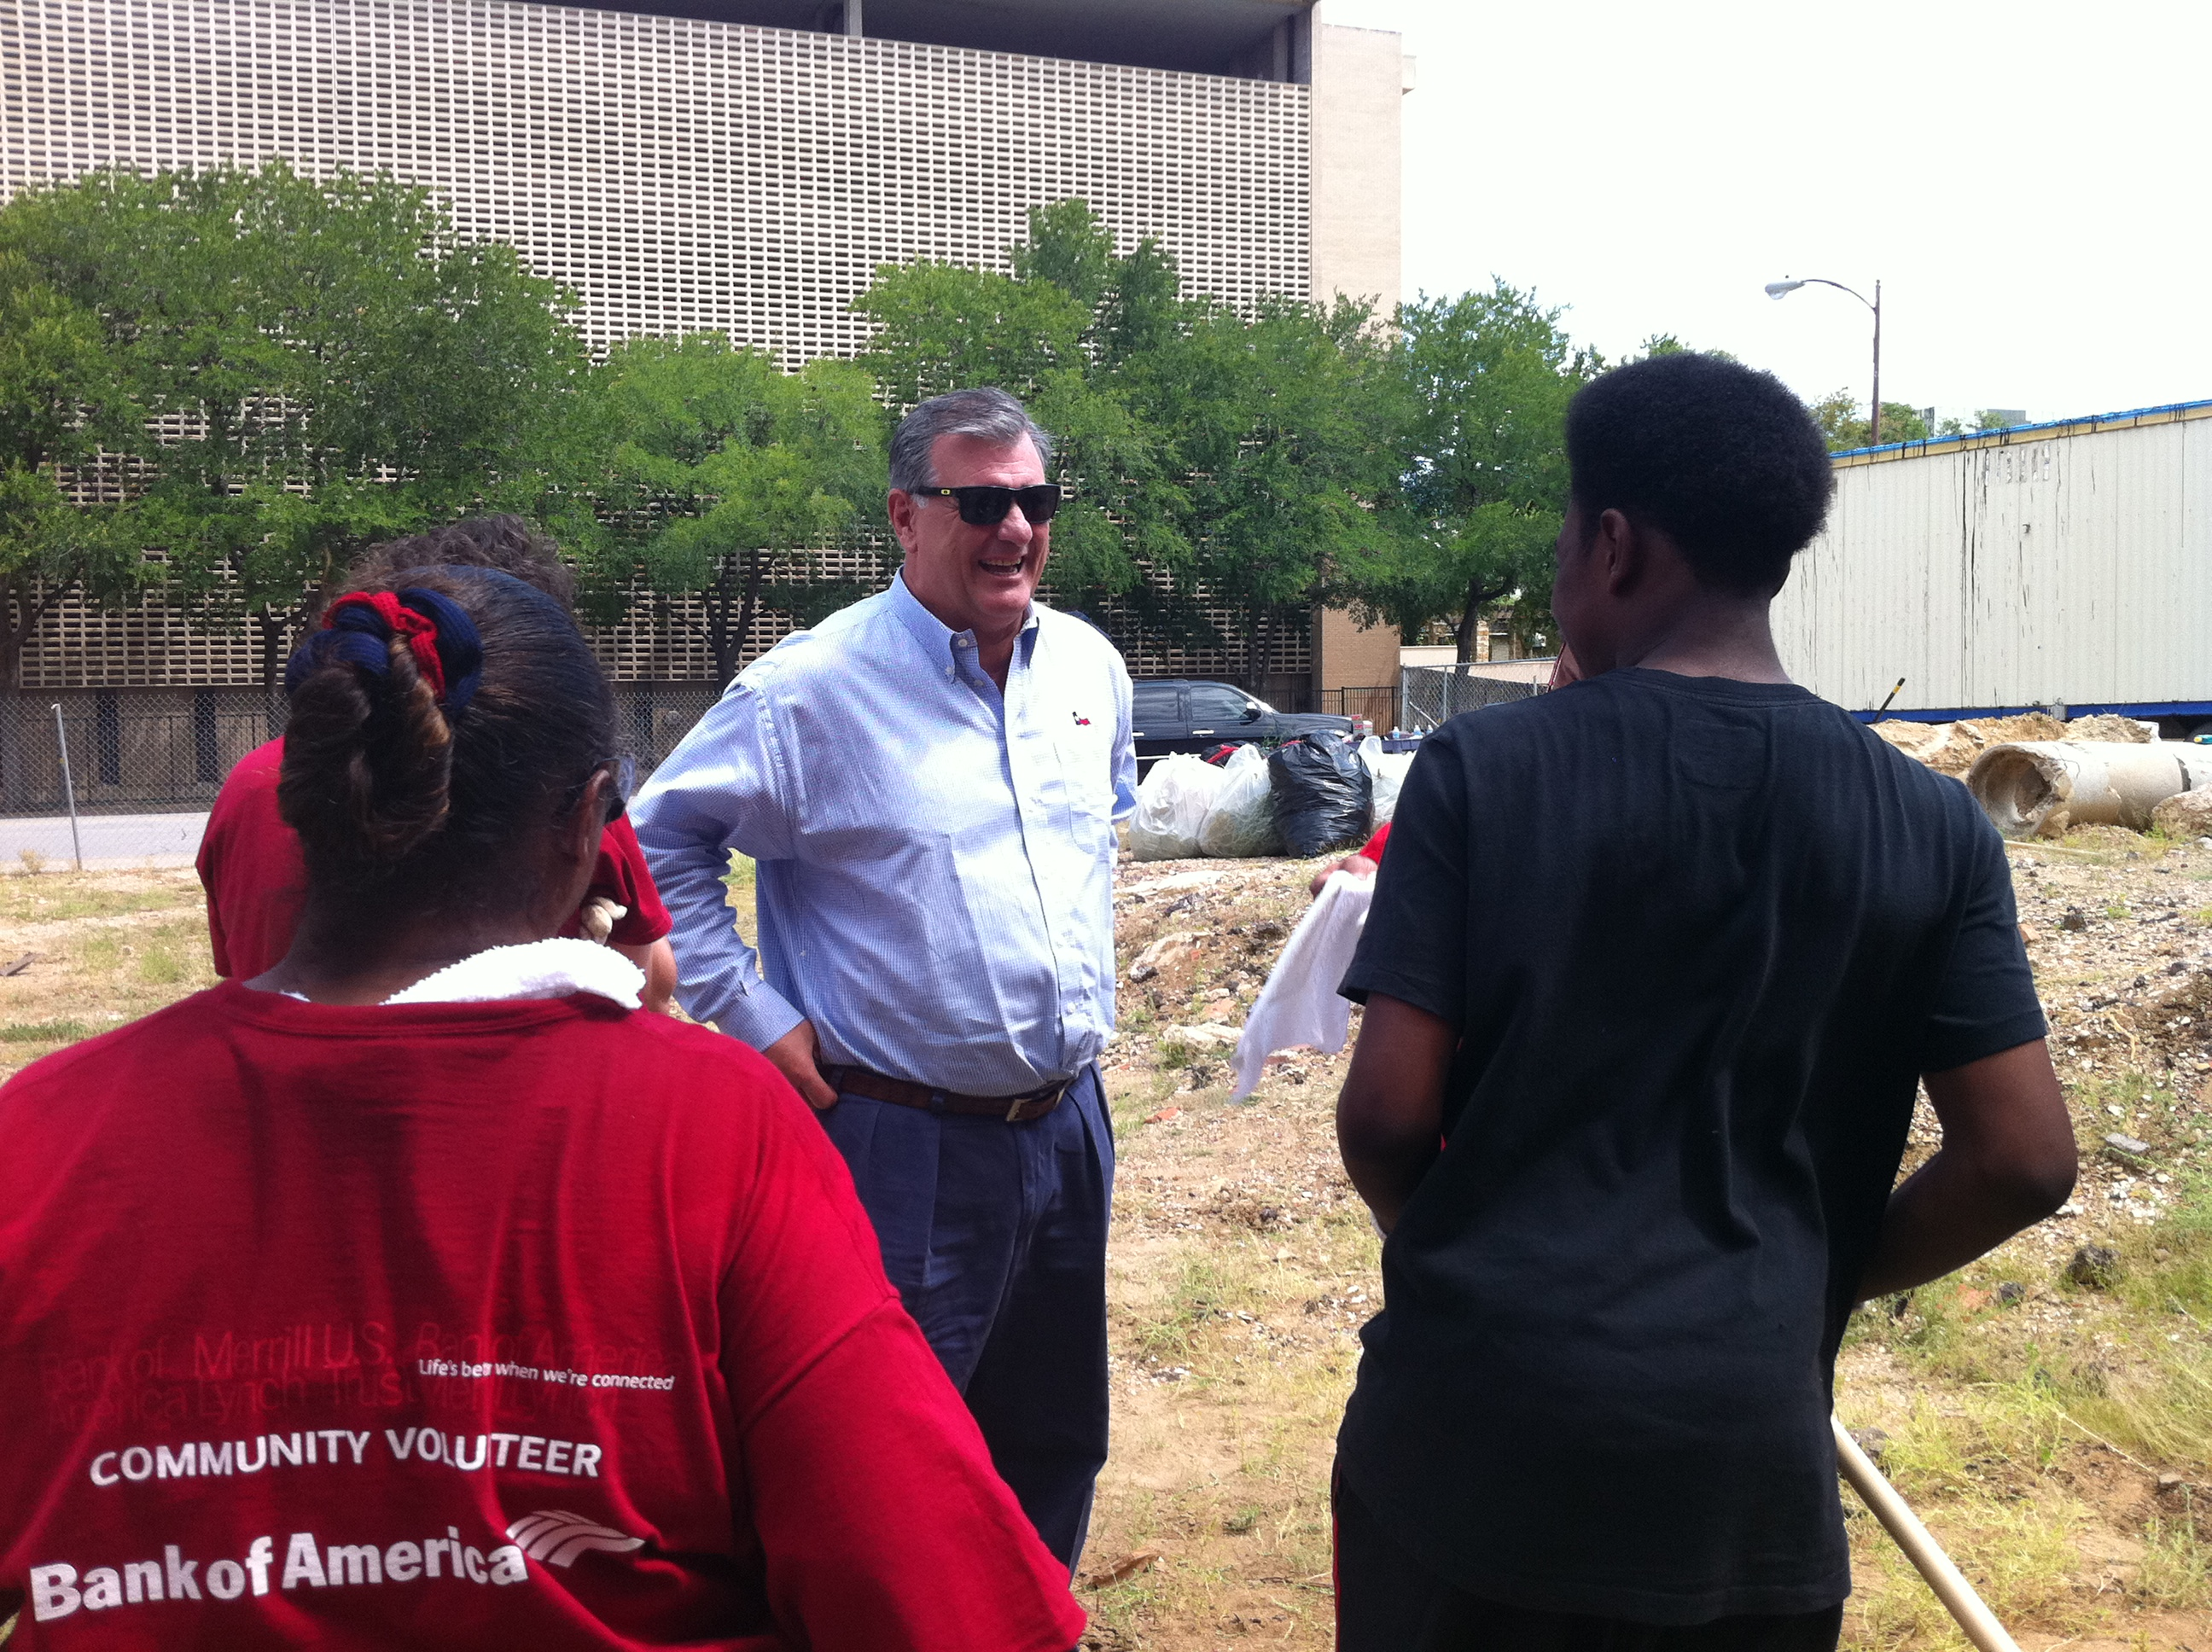 Dallas Mayor Mike Rawlings visits LGBT Pride Month event